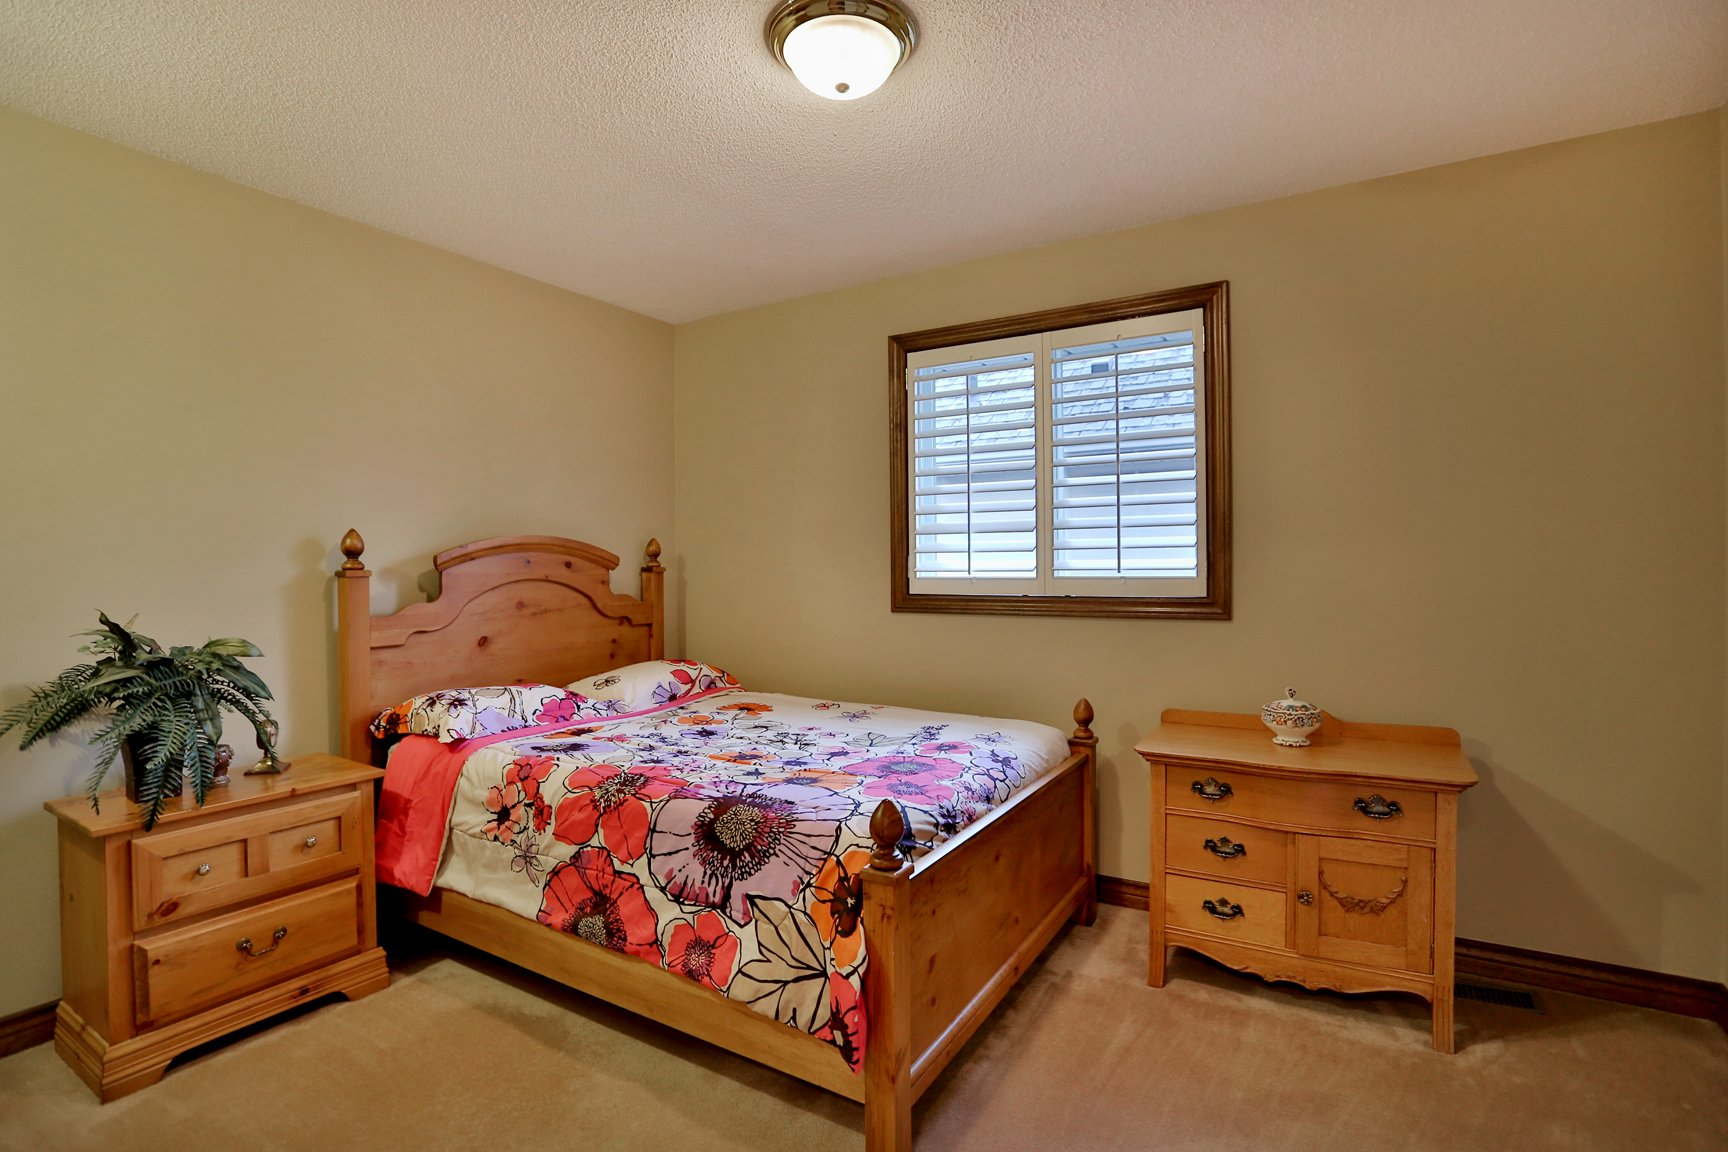 85 Galley bedroom4 - Recently SOLD in Ancaster